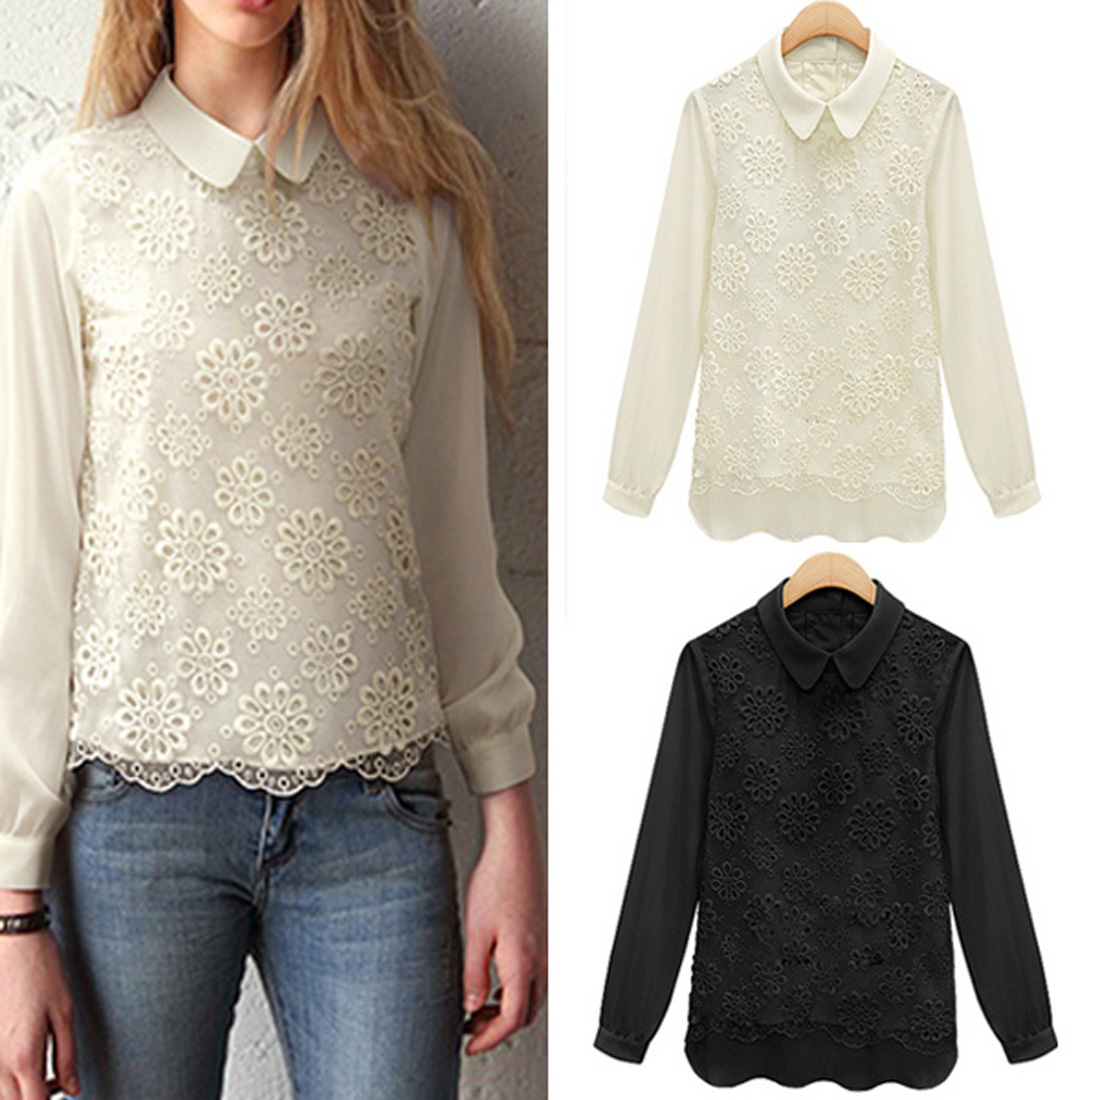 White Lace Blouse With Collar 38